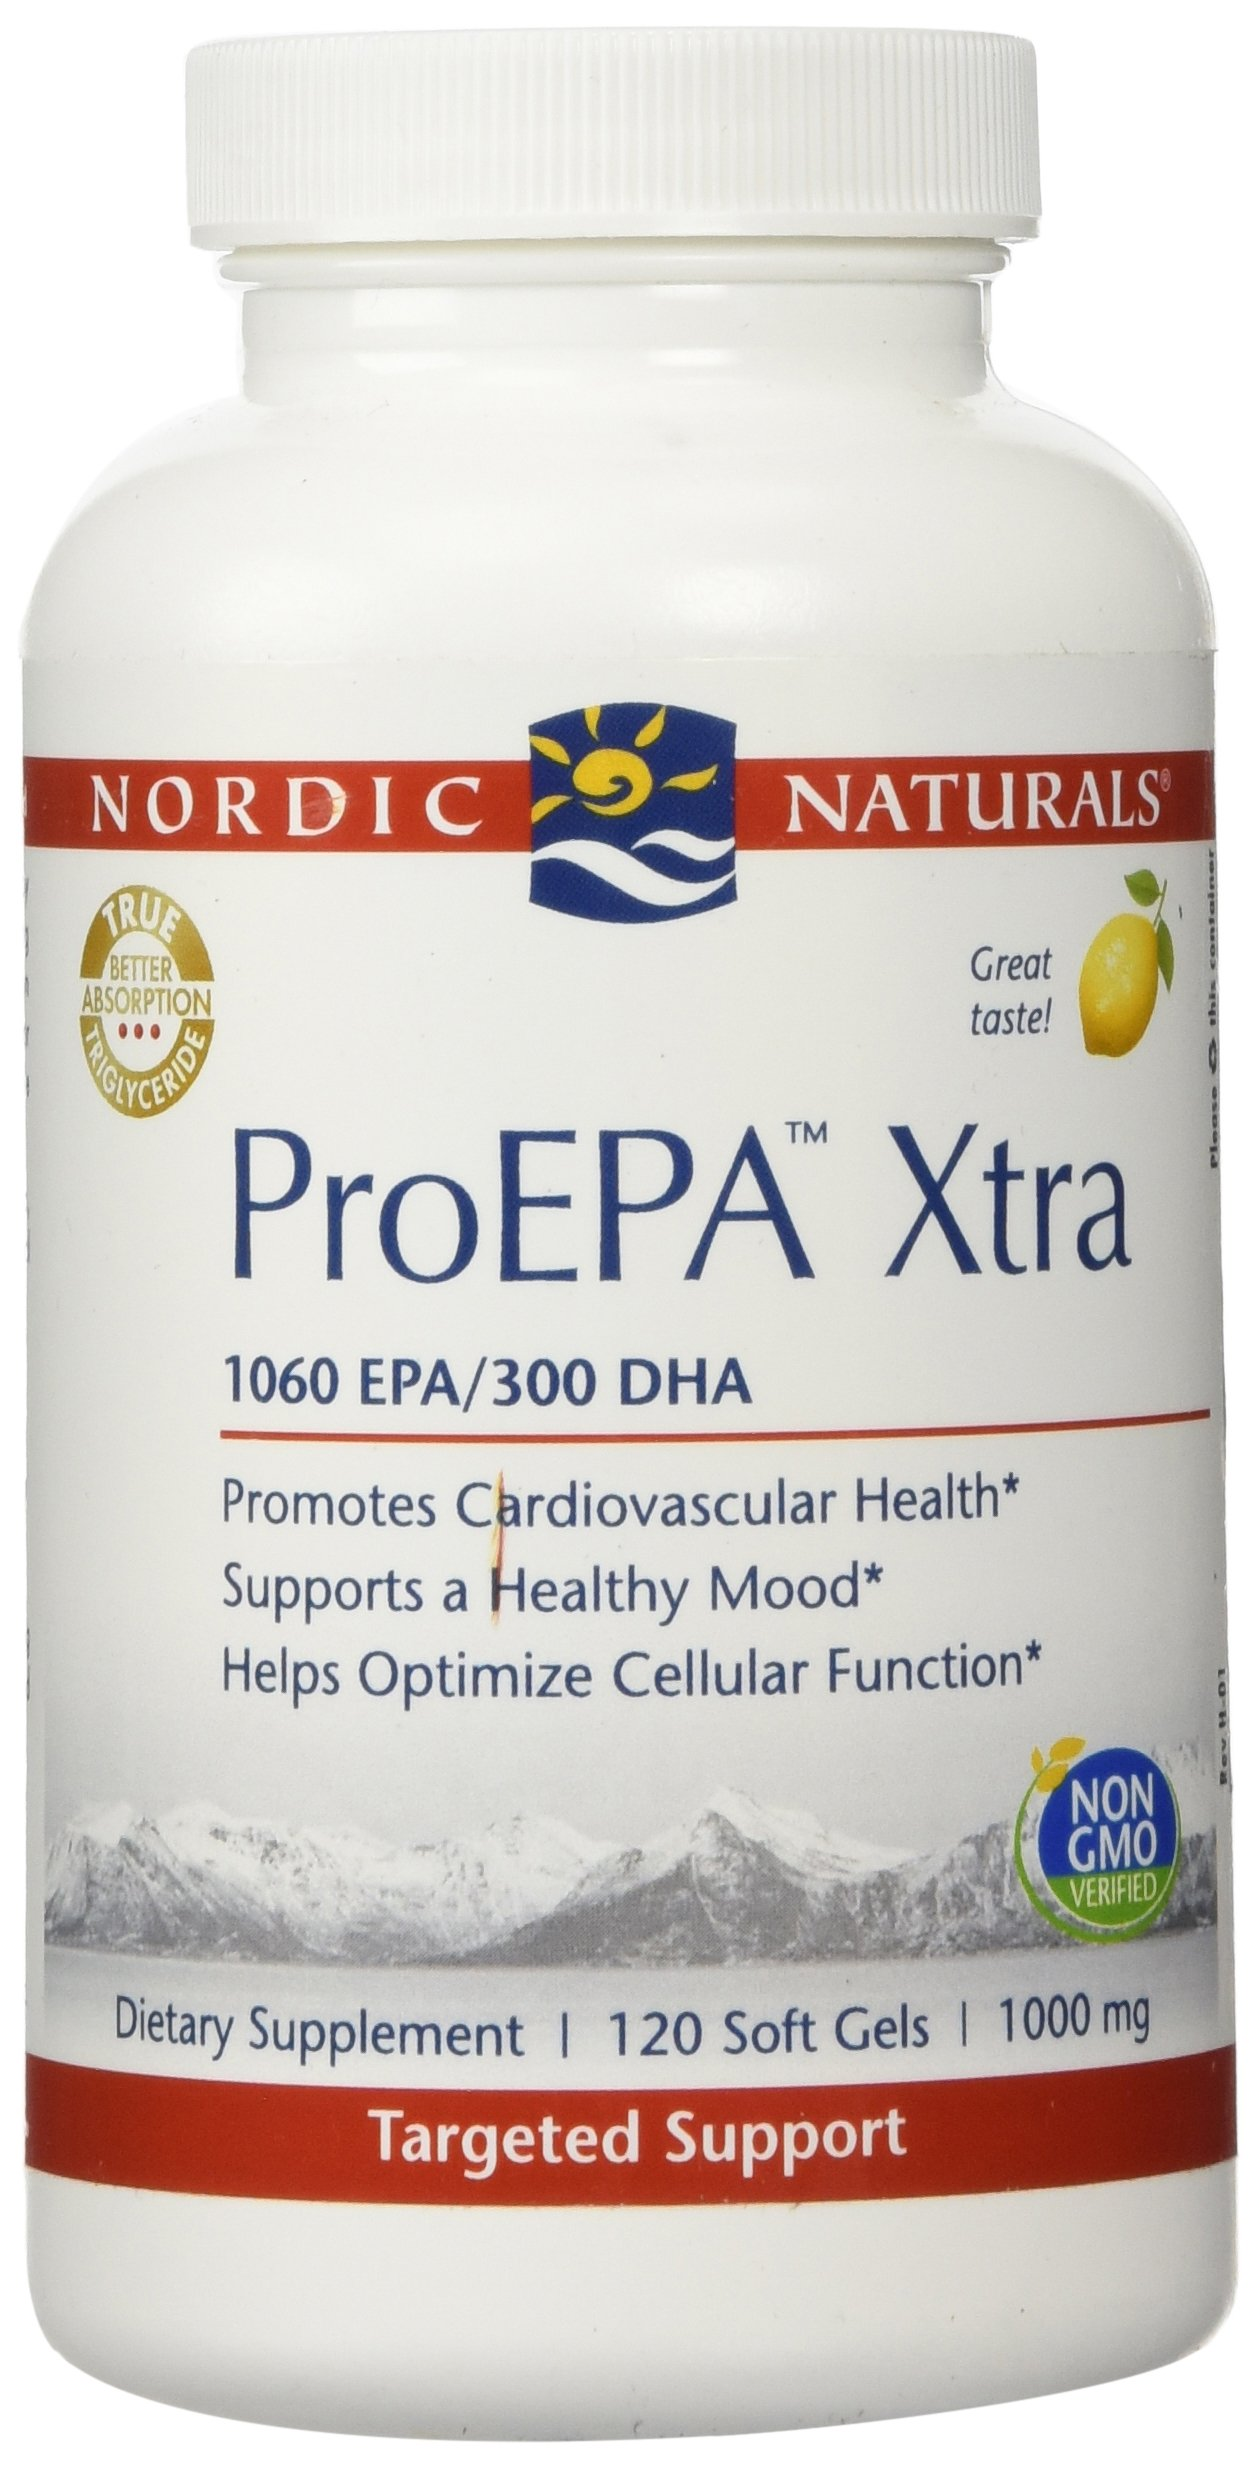 Nordic Naturals ProEPA Xtra- Fish Oil, 1060 mg EPA, 260 mg DHA, Targeted Support for Cardiovascular Health, a Healthy Mood, and Optimal Cellular Function, Lemon Flavored, 120 Soft Gels by Nordic Naturals